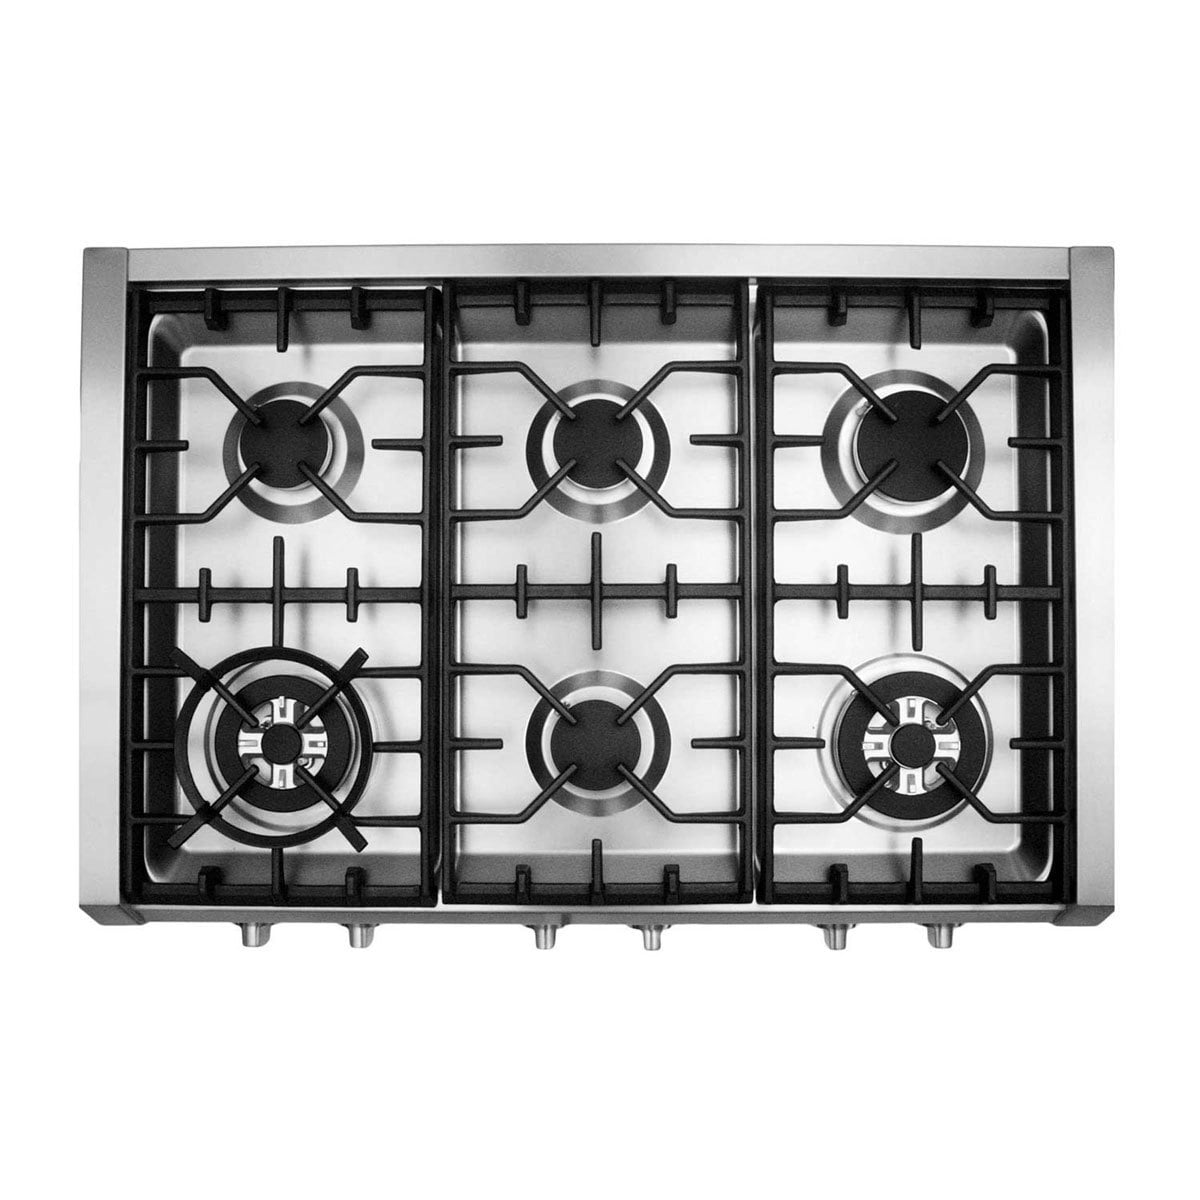 Cosmo (S9-6) 36 in. Pro-Style Gas Rangetop with 6 Burners, with ...